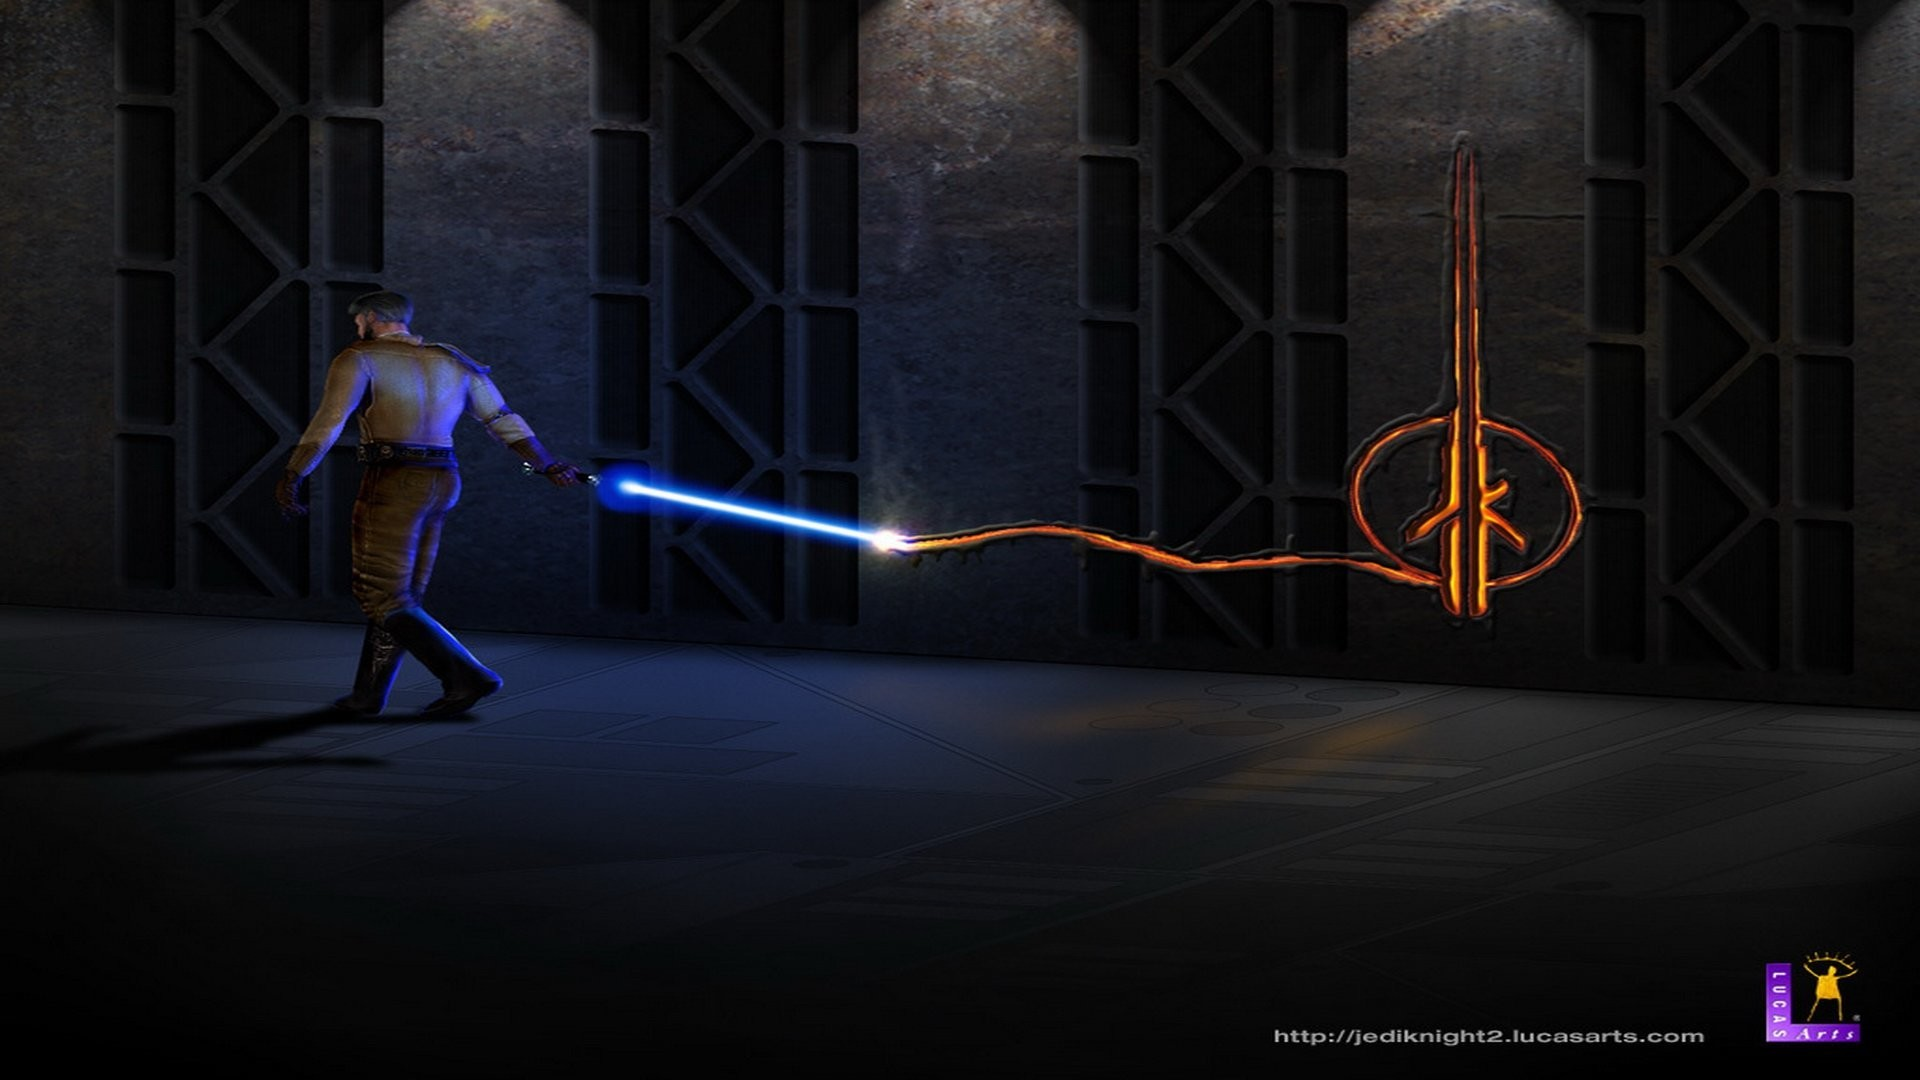 Jedi Order Wallpapers Hd Wallpaper Collections 4kwallpaper Wiki